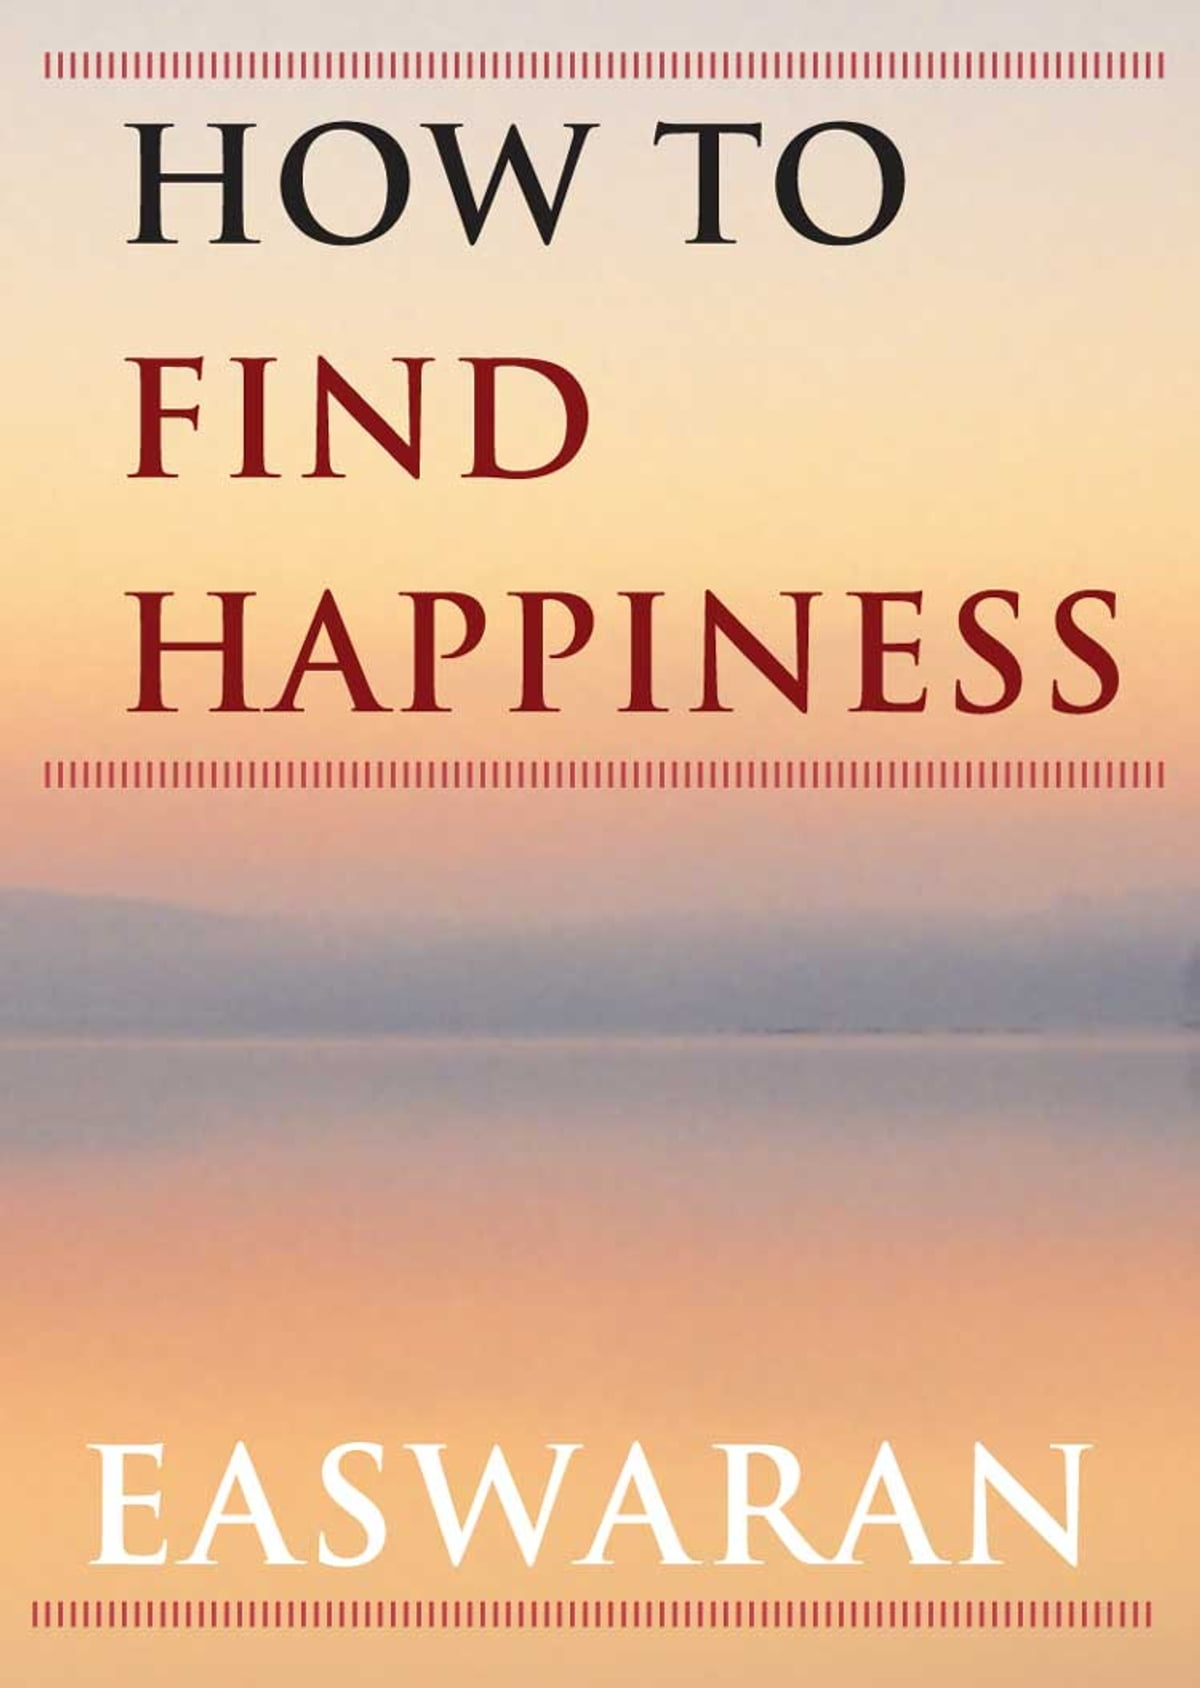 how can i find happiness